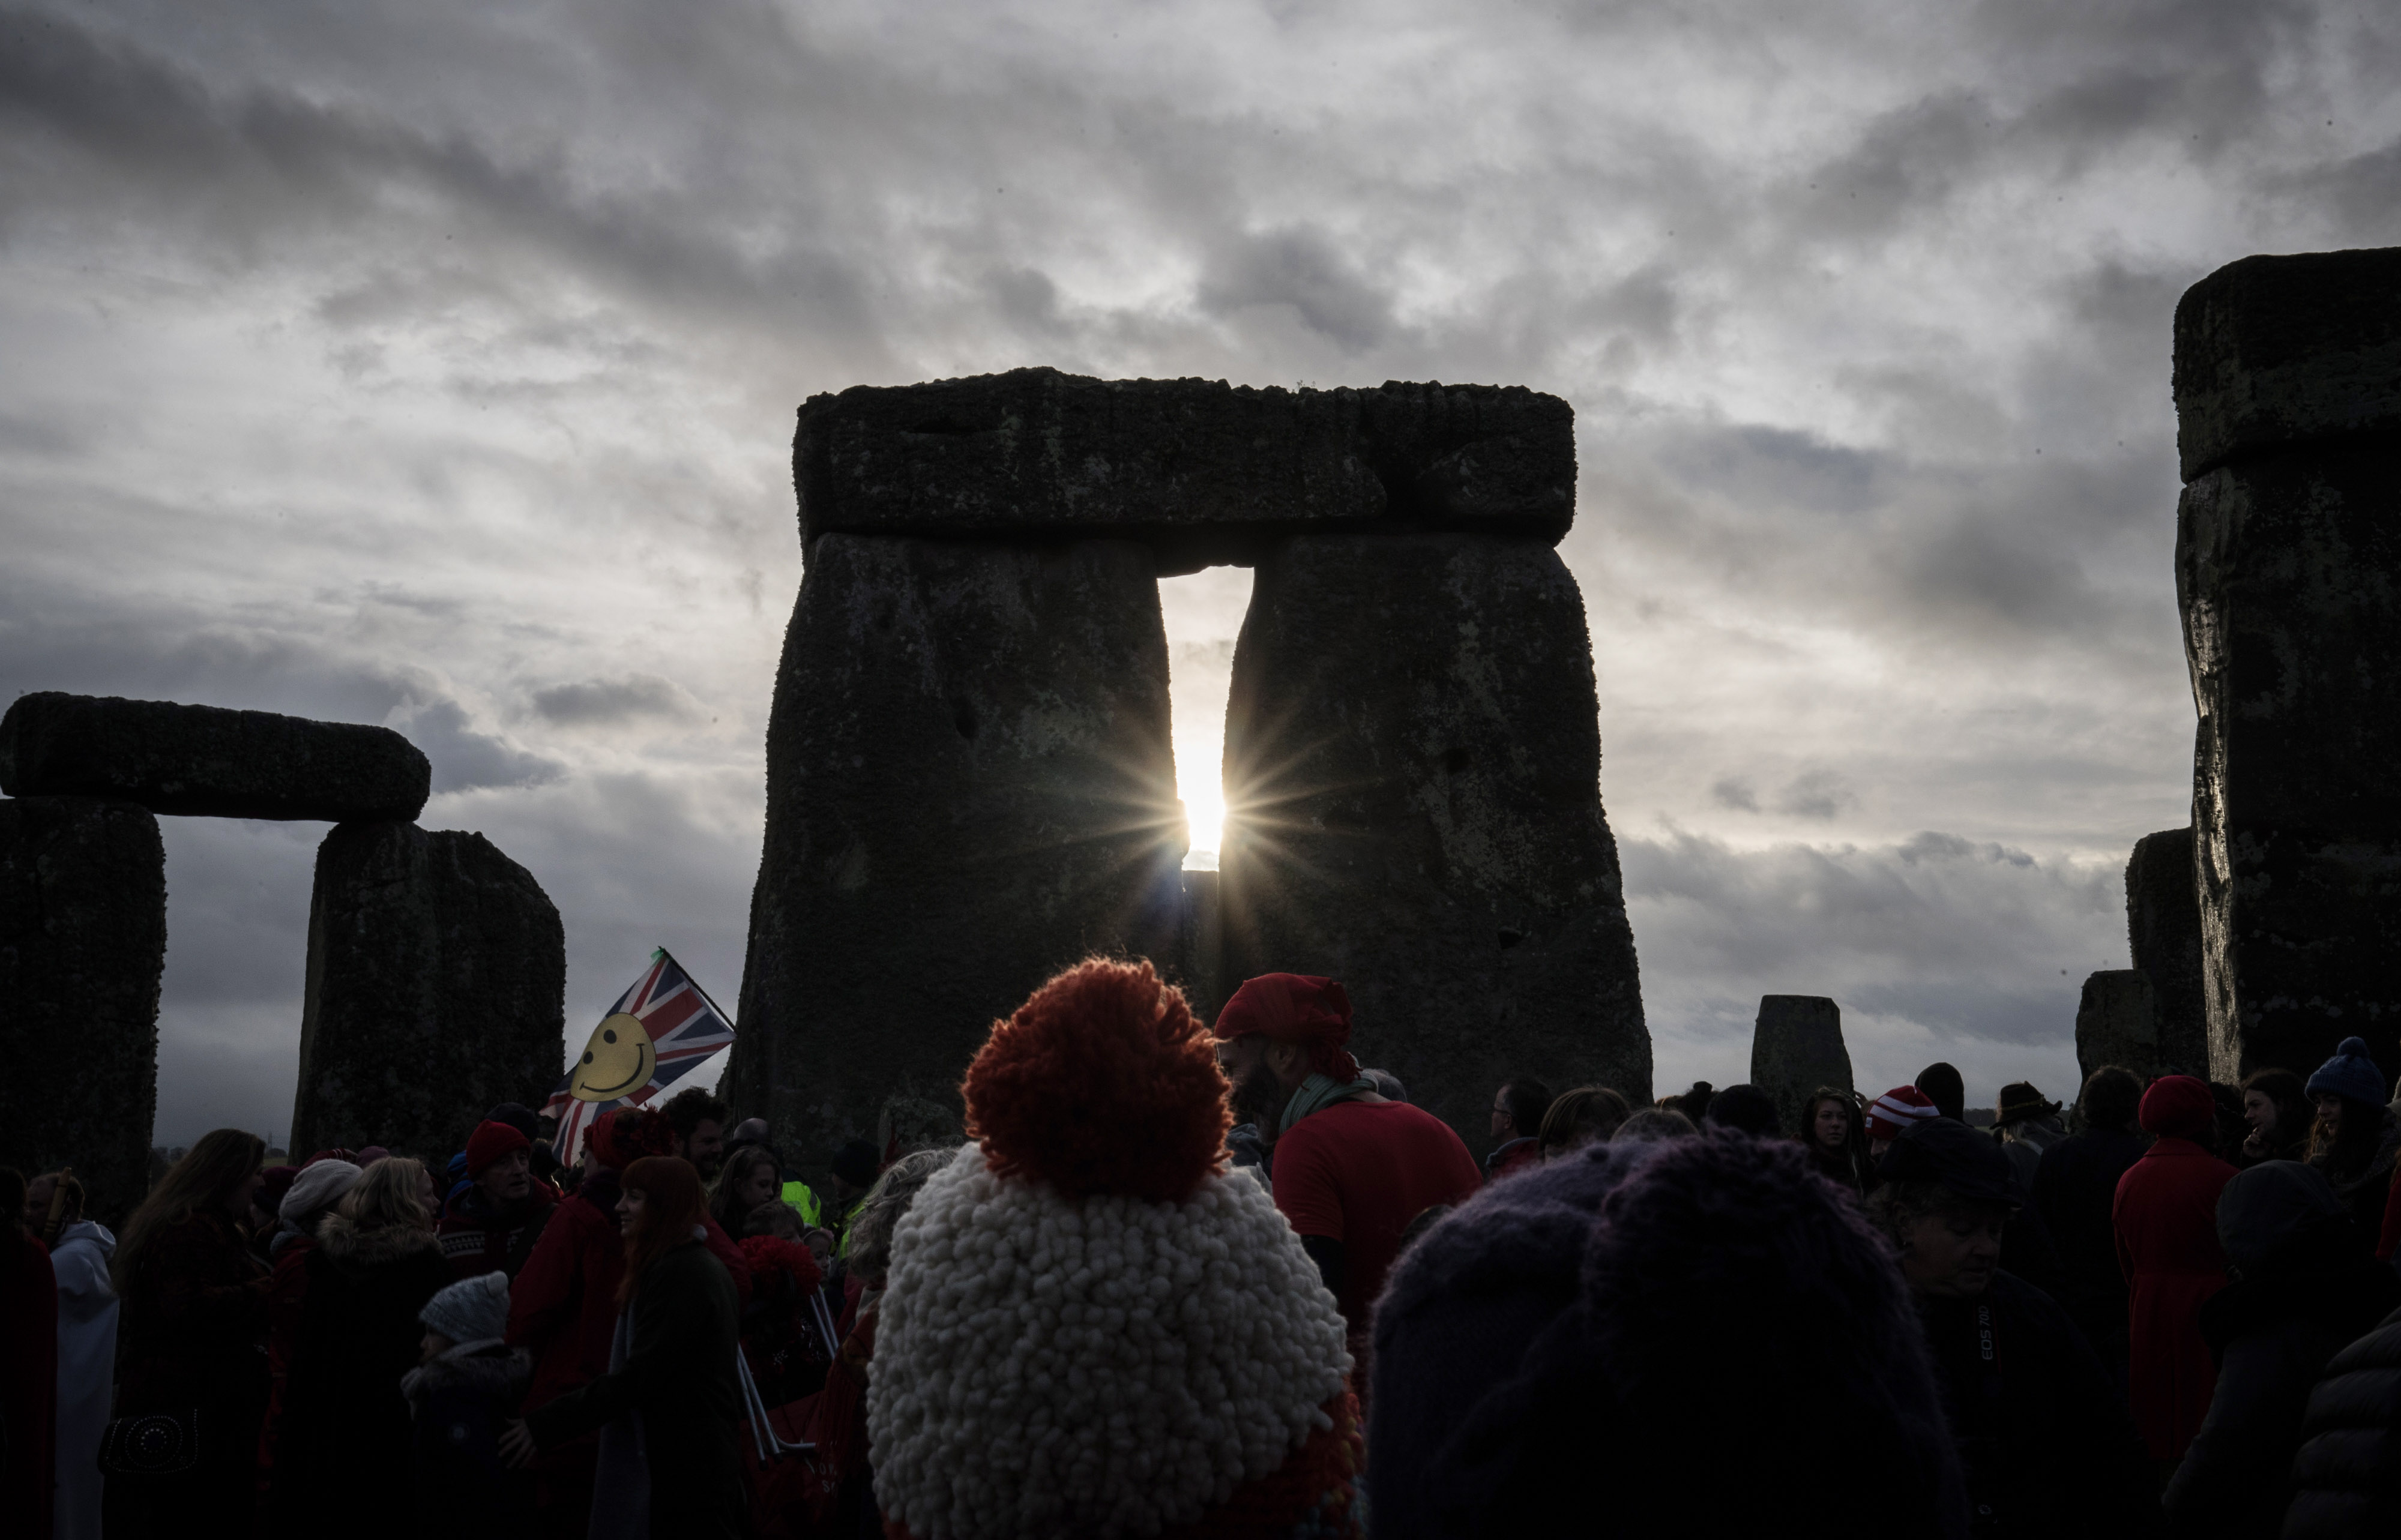 People look towards the sun as druids, pagans and revellers gather at Stonehenge, hoping to see the sun rise, as they take part in a winter solstice ceremony at the ancient neolithic monument of Stonehenge near Amesbury, in Wiltshire, England on Dec. 21, 2016.